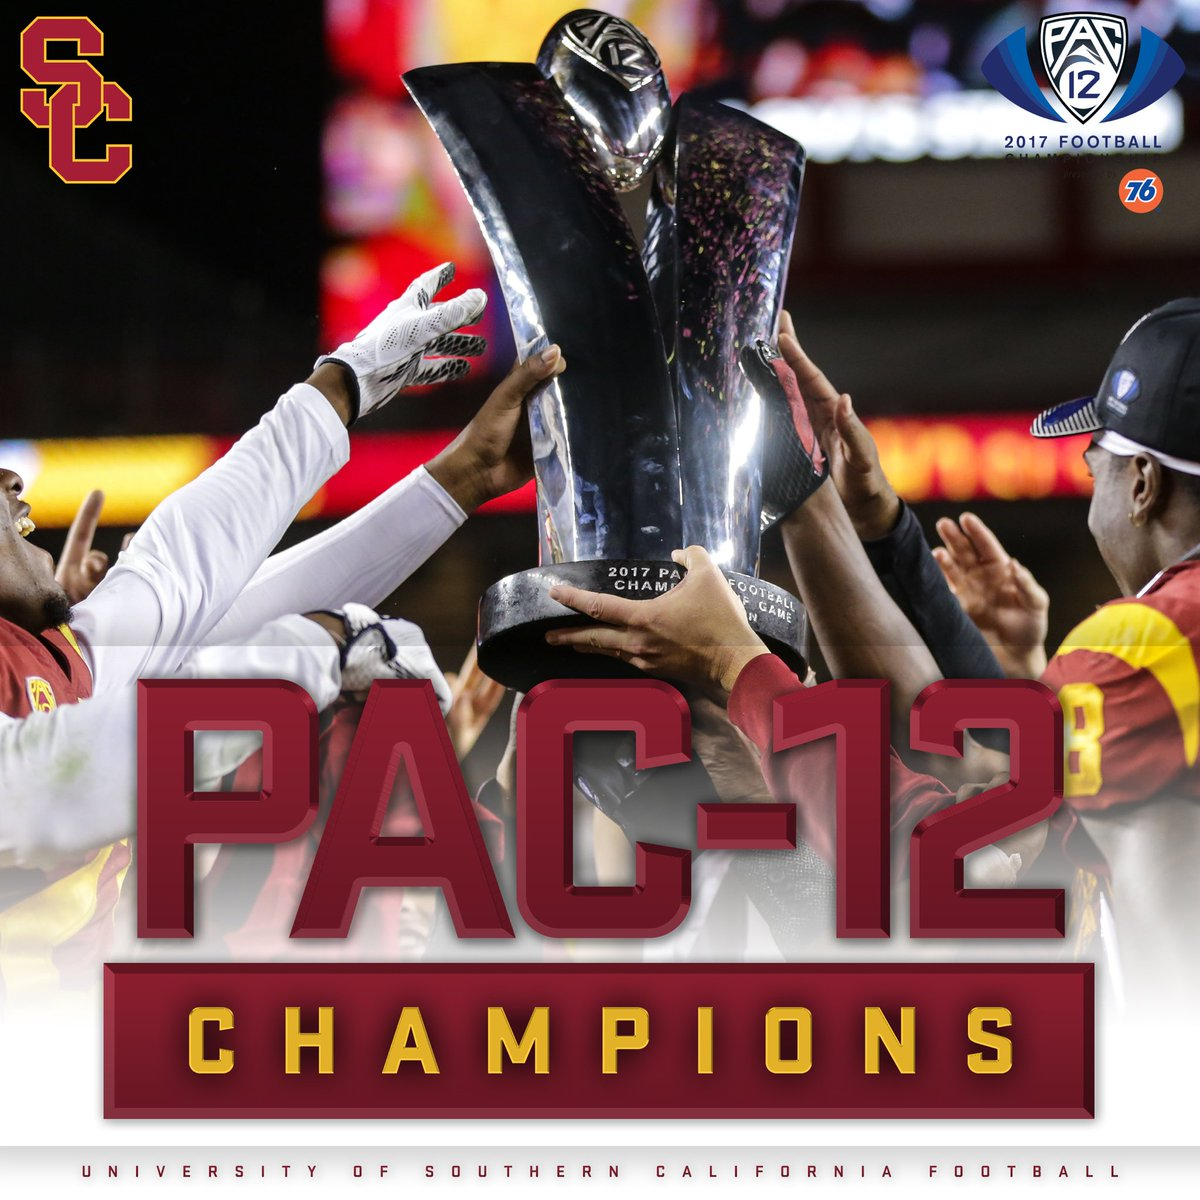 For the first time since 2008, the Trojans are Pac-12 Champions! #FightOn